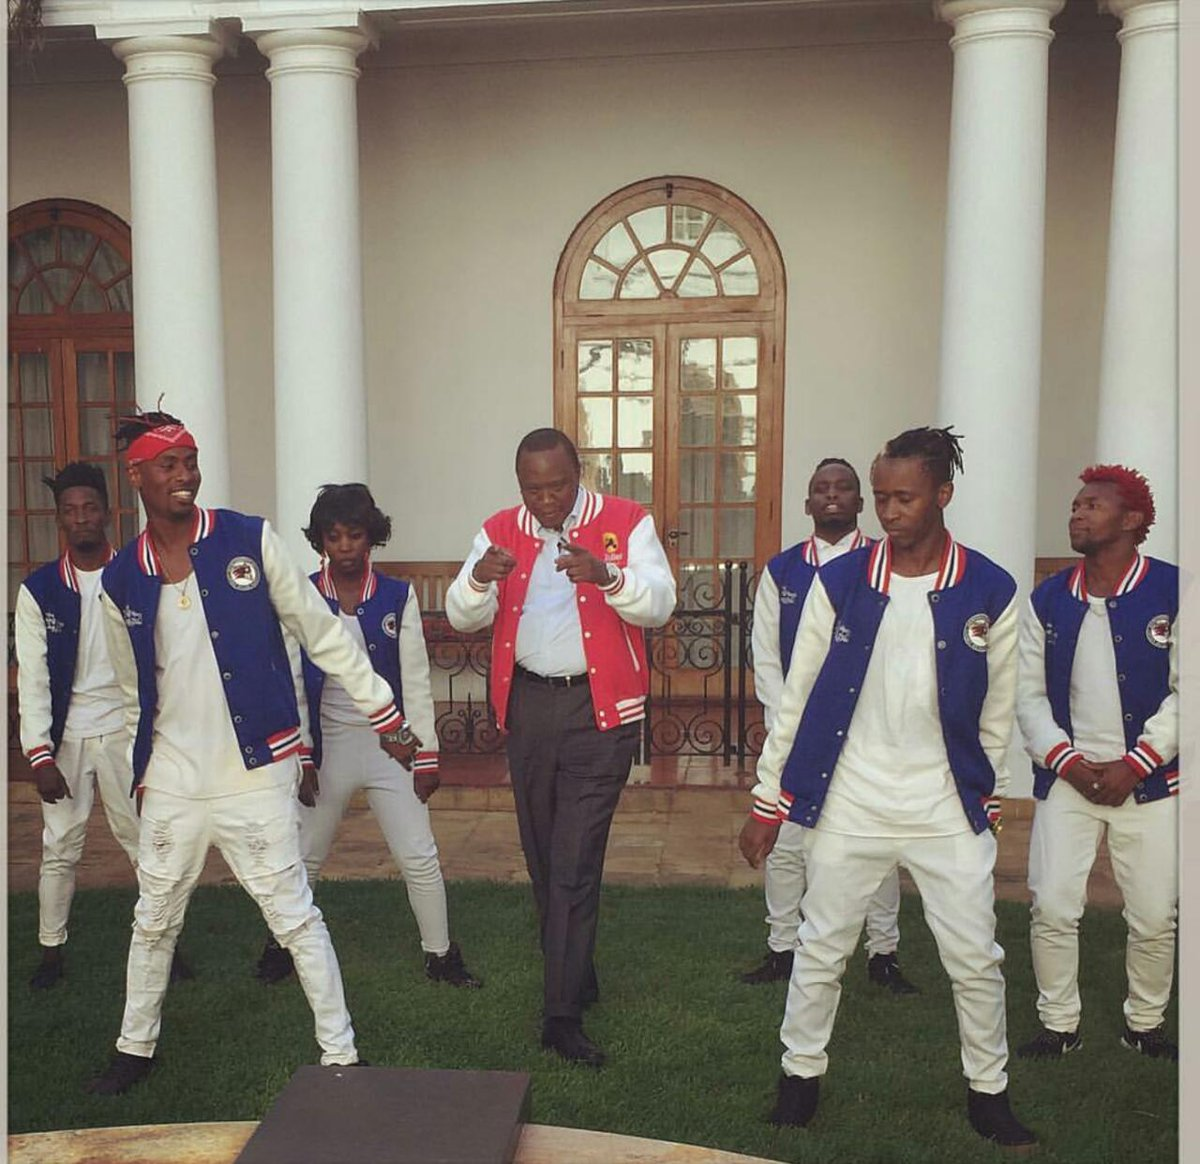 #DabOfShame: Uhuru Kenyata Is Dabbing In Statehouse And Kenyans Are Not Amused